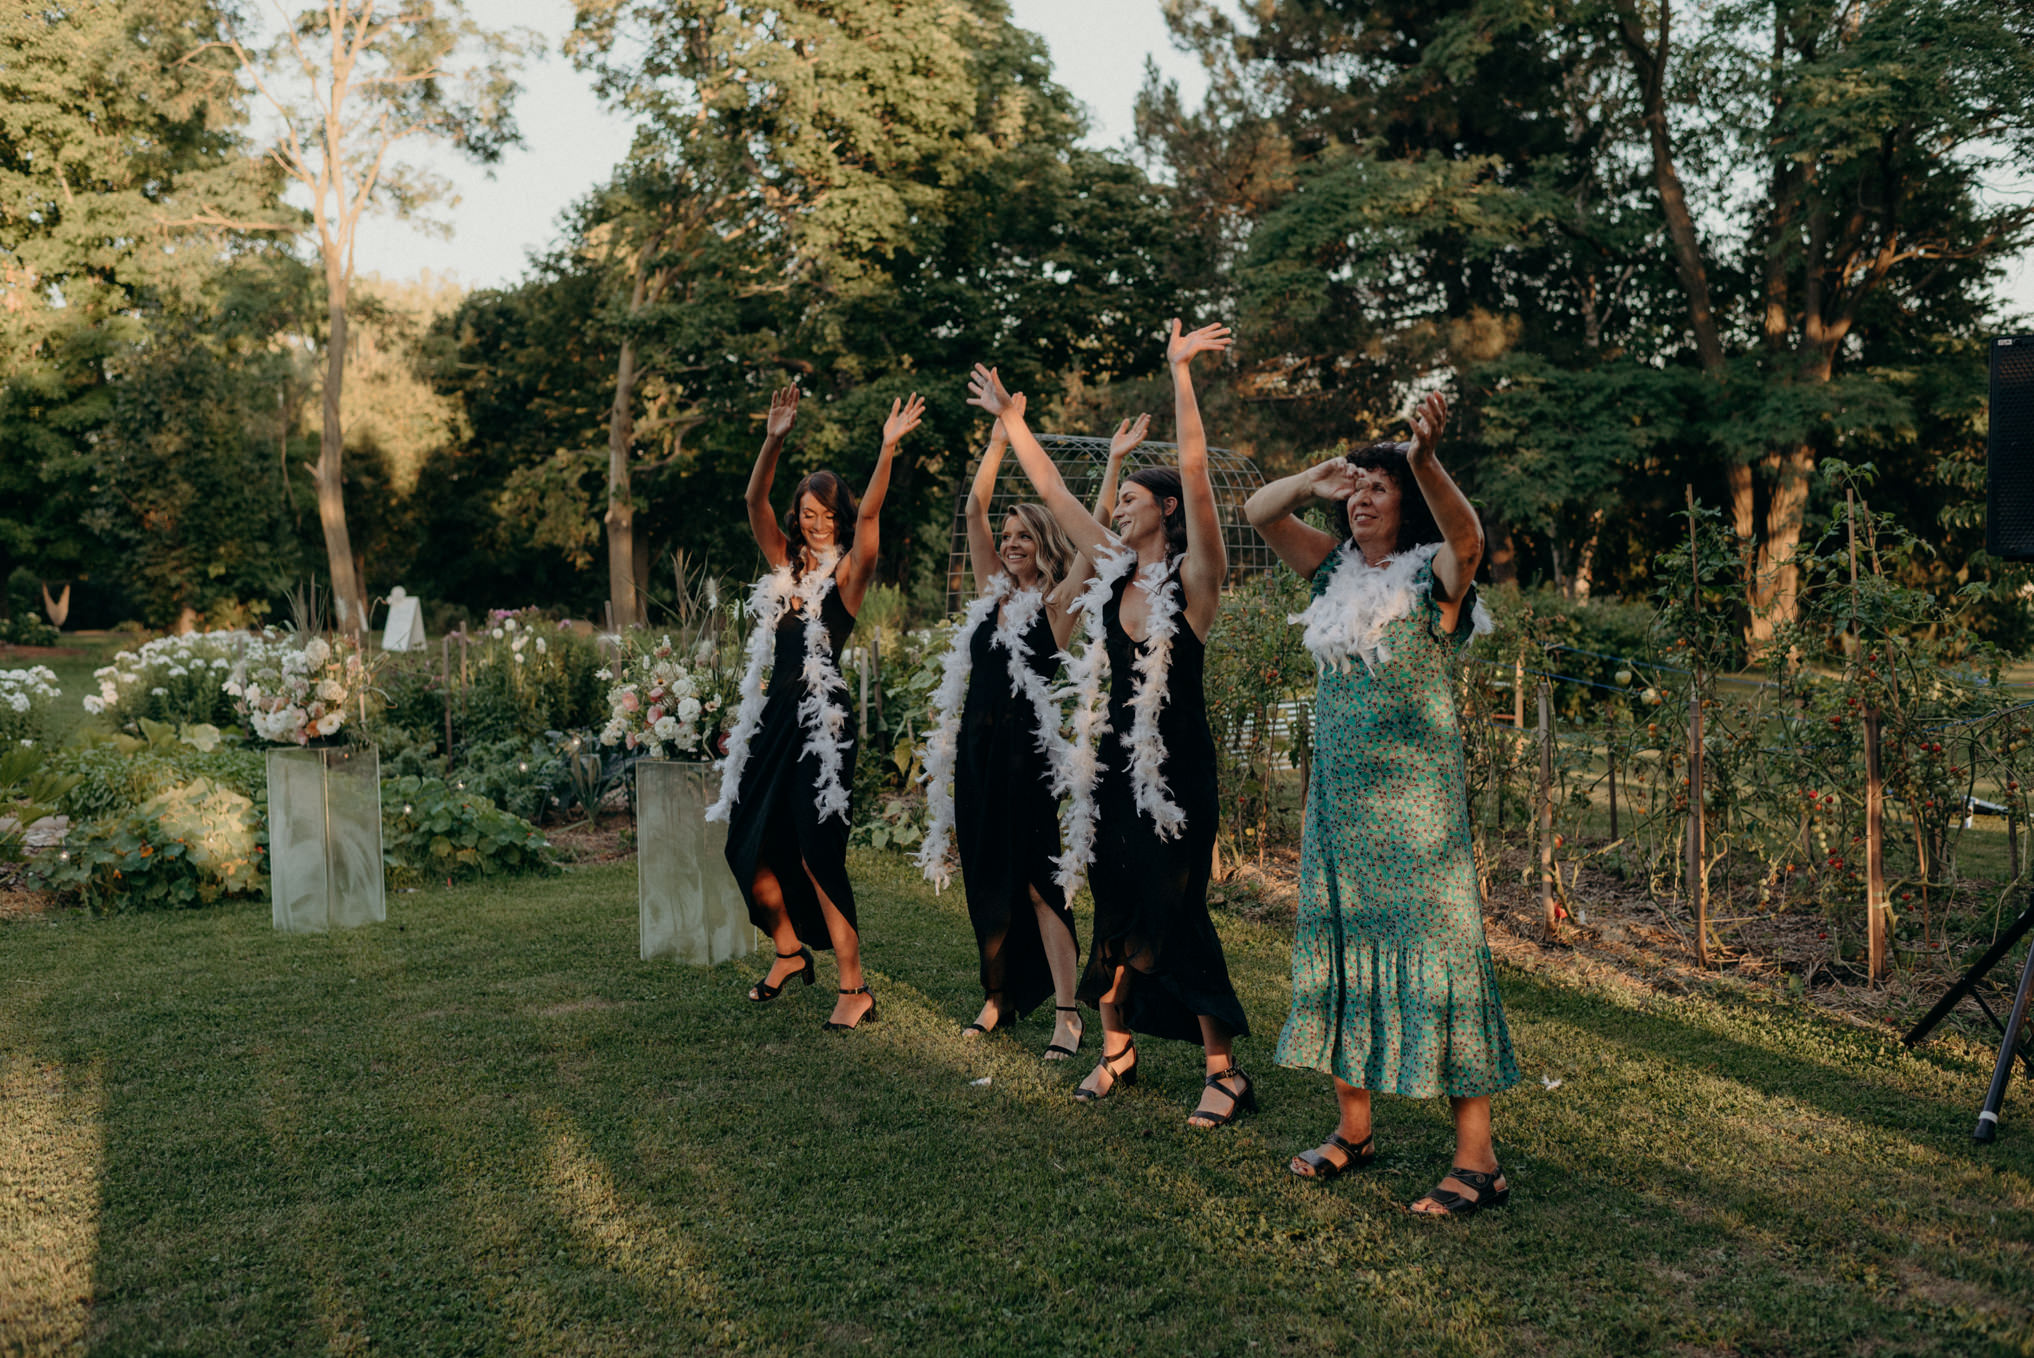 guests dancing at wedding outdoors on grass